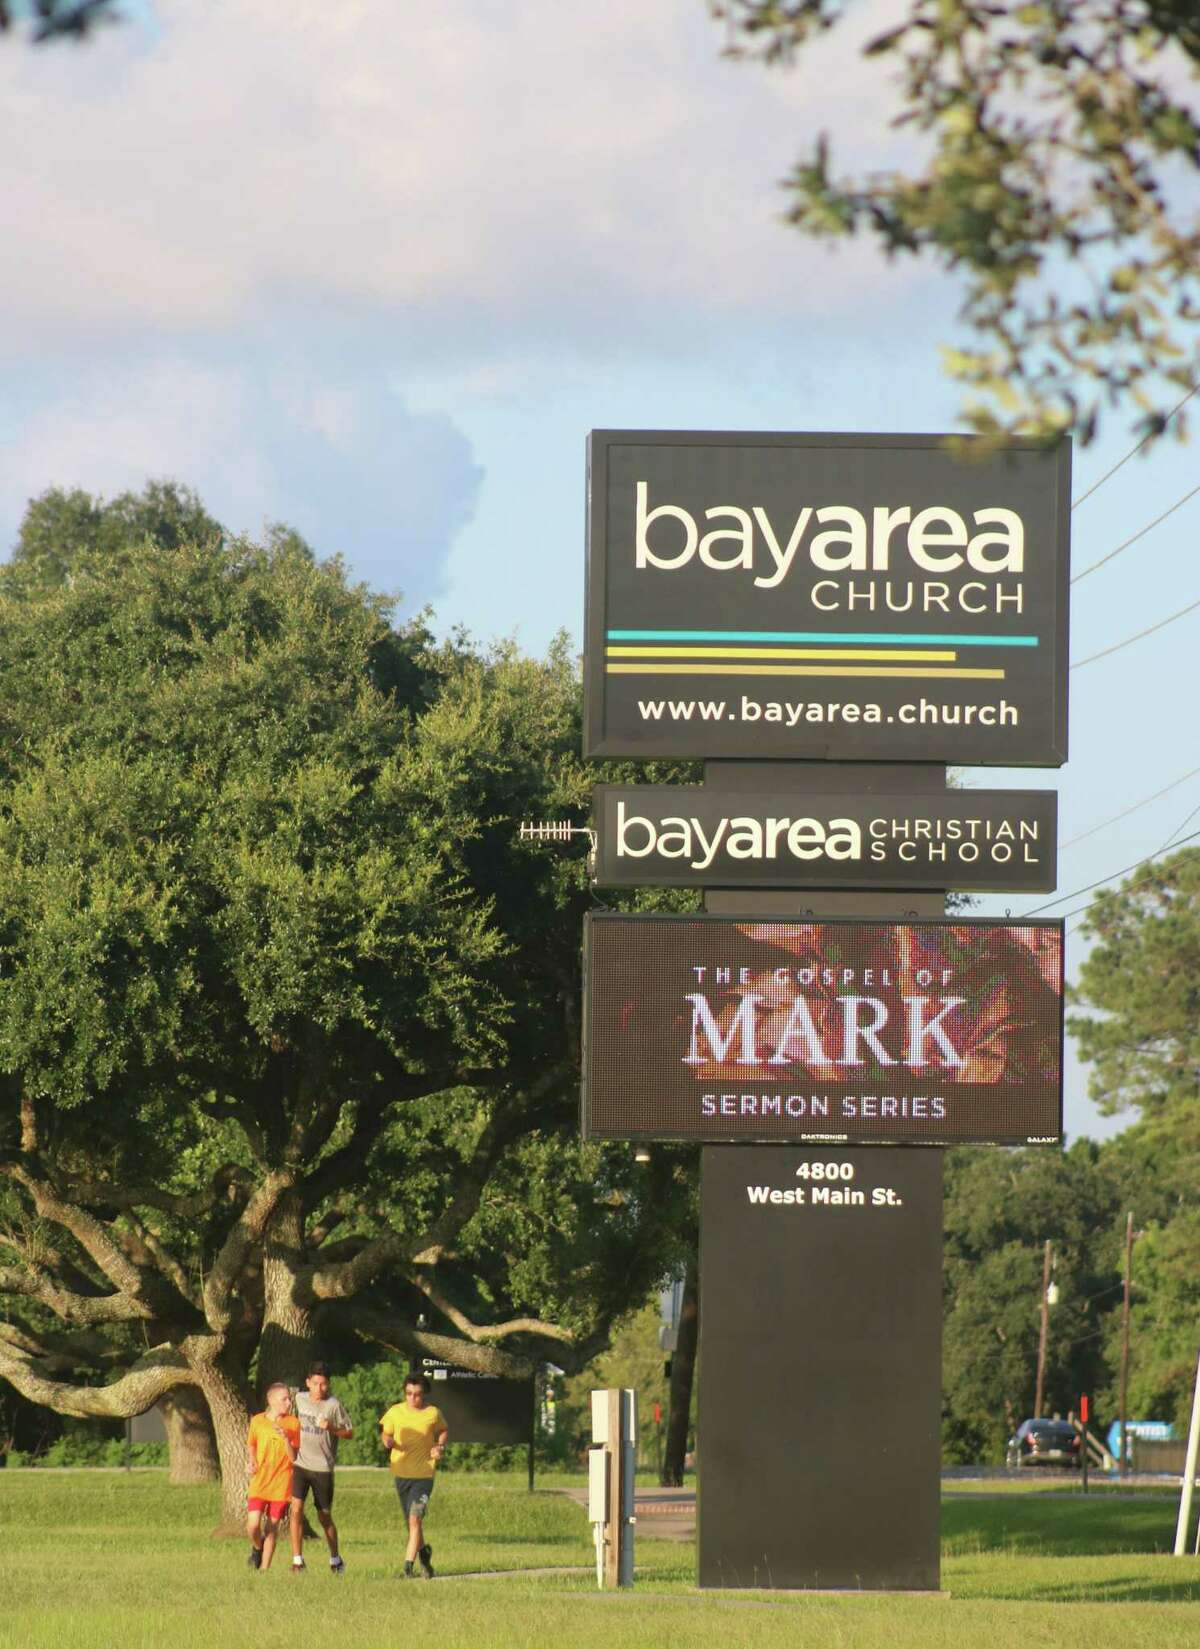 Bay Area Christian School is among local private schools preparing for the start of classes this fall. The first day of school for BACS will be Aug. 10, welcoming over 800 students from pre-K through 12th grade.